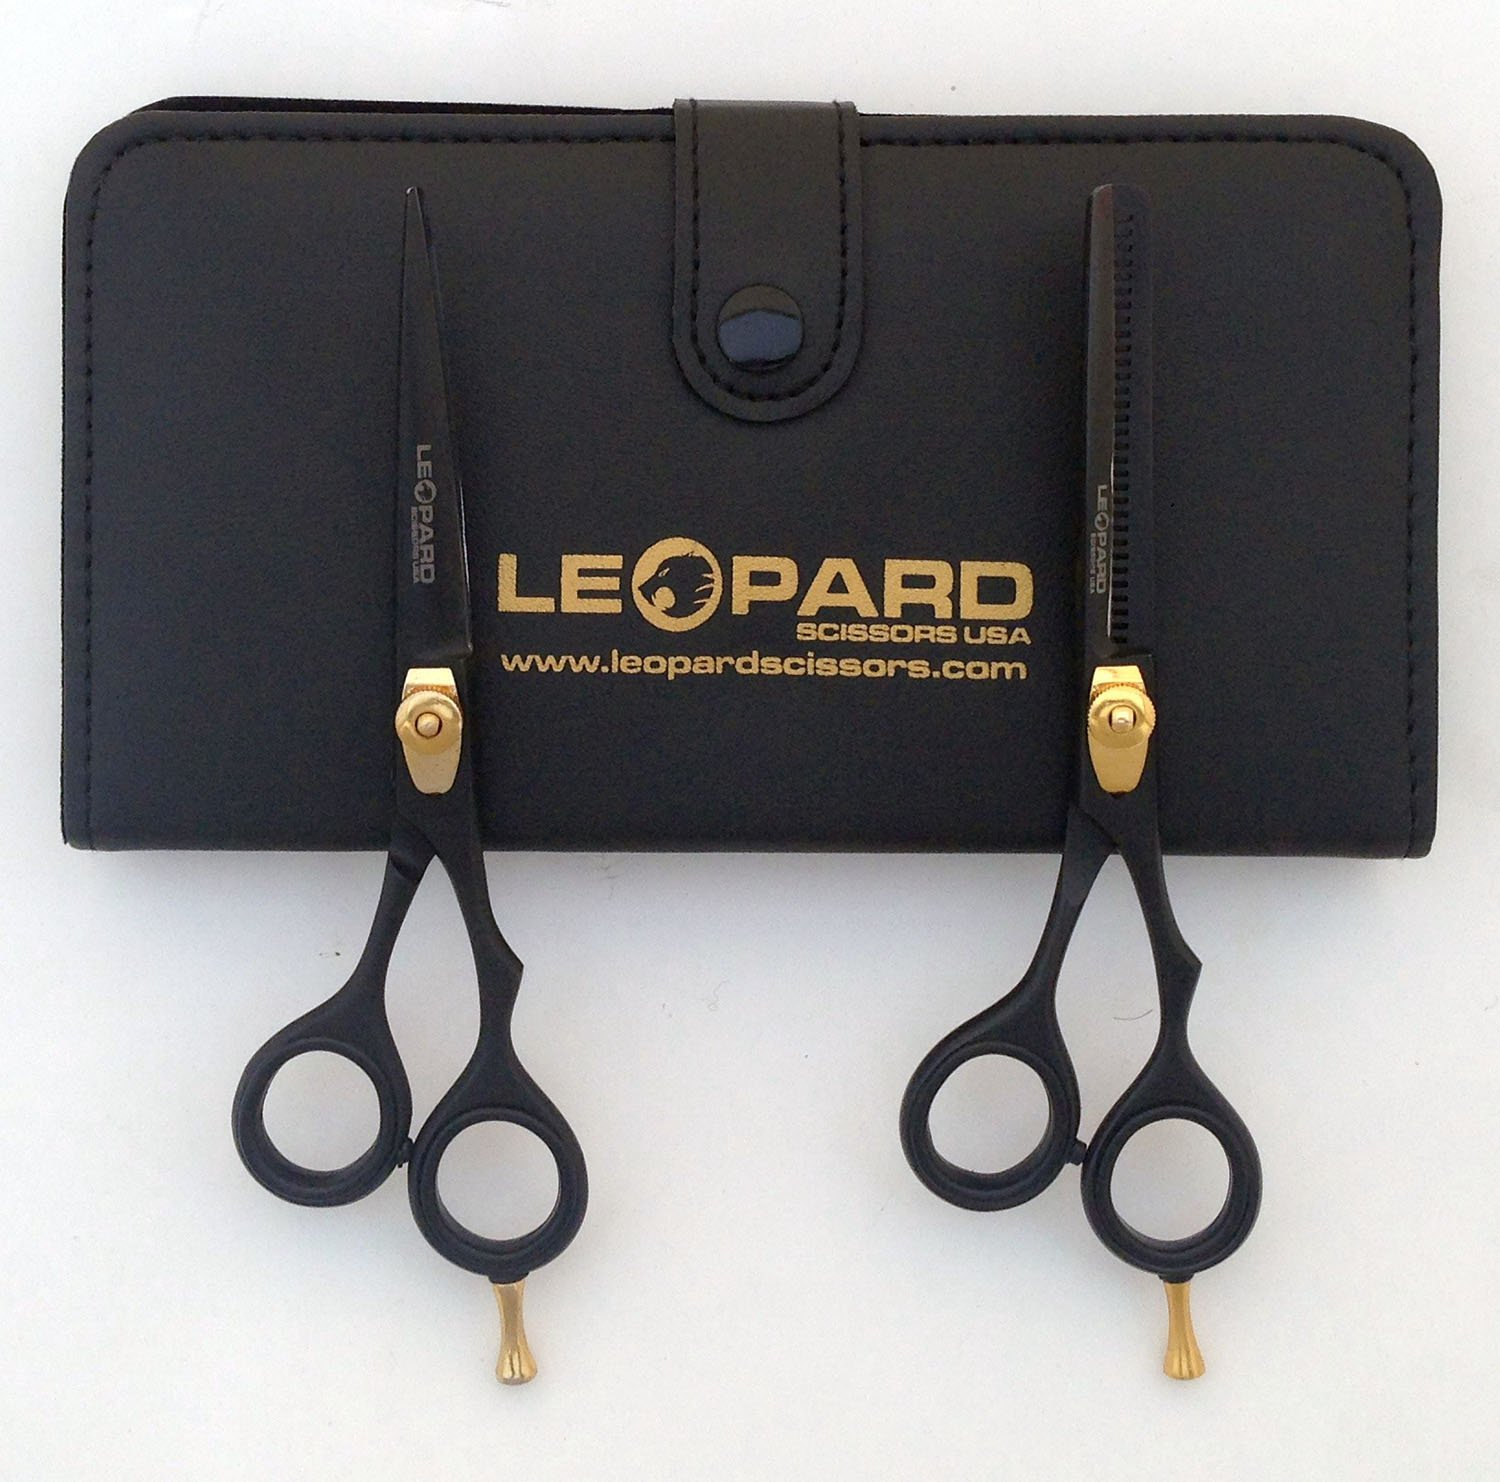 "Professional Hairdressing Right Hand Scissors & Thinner Hair Cutting Shears Barber Salon Styling Scissors Set 6.0"" Japanese Steel with Free Case Leopard Shears Ls-540"